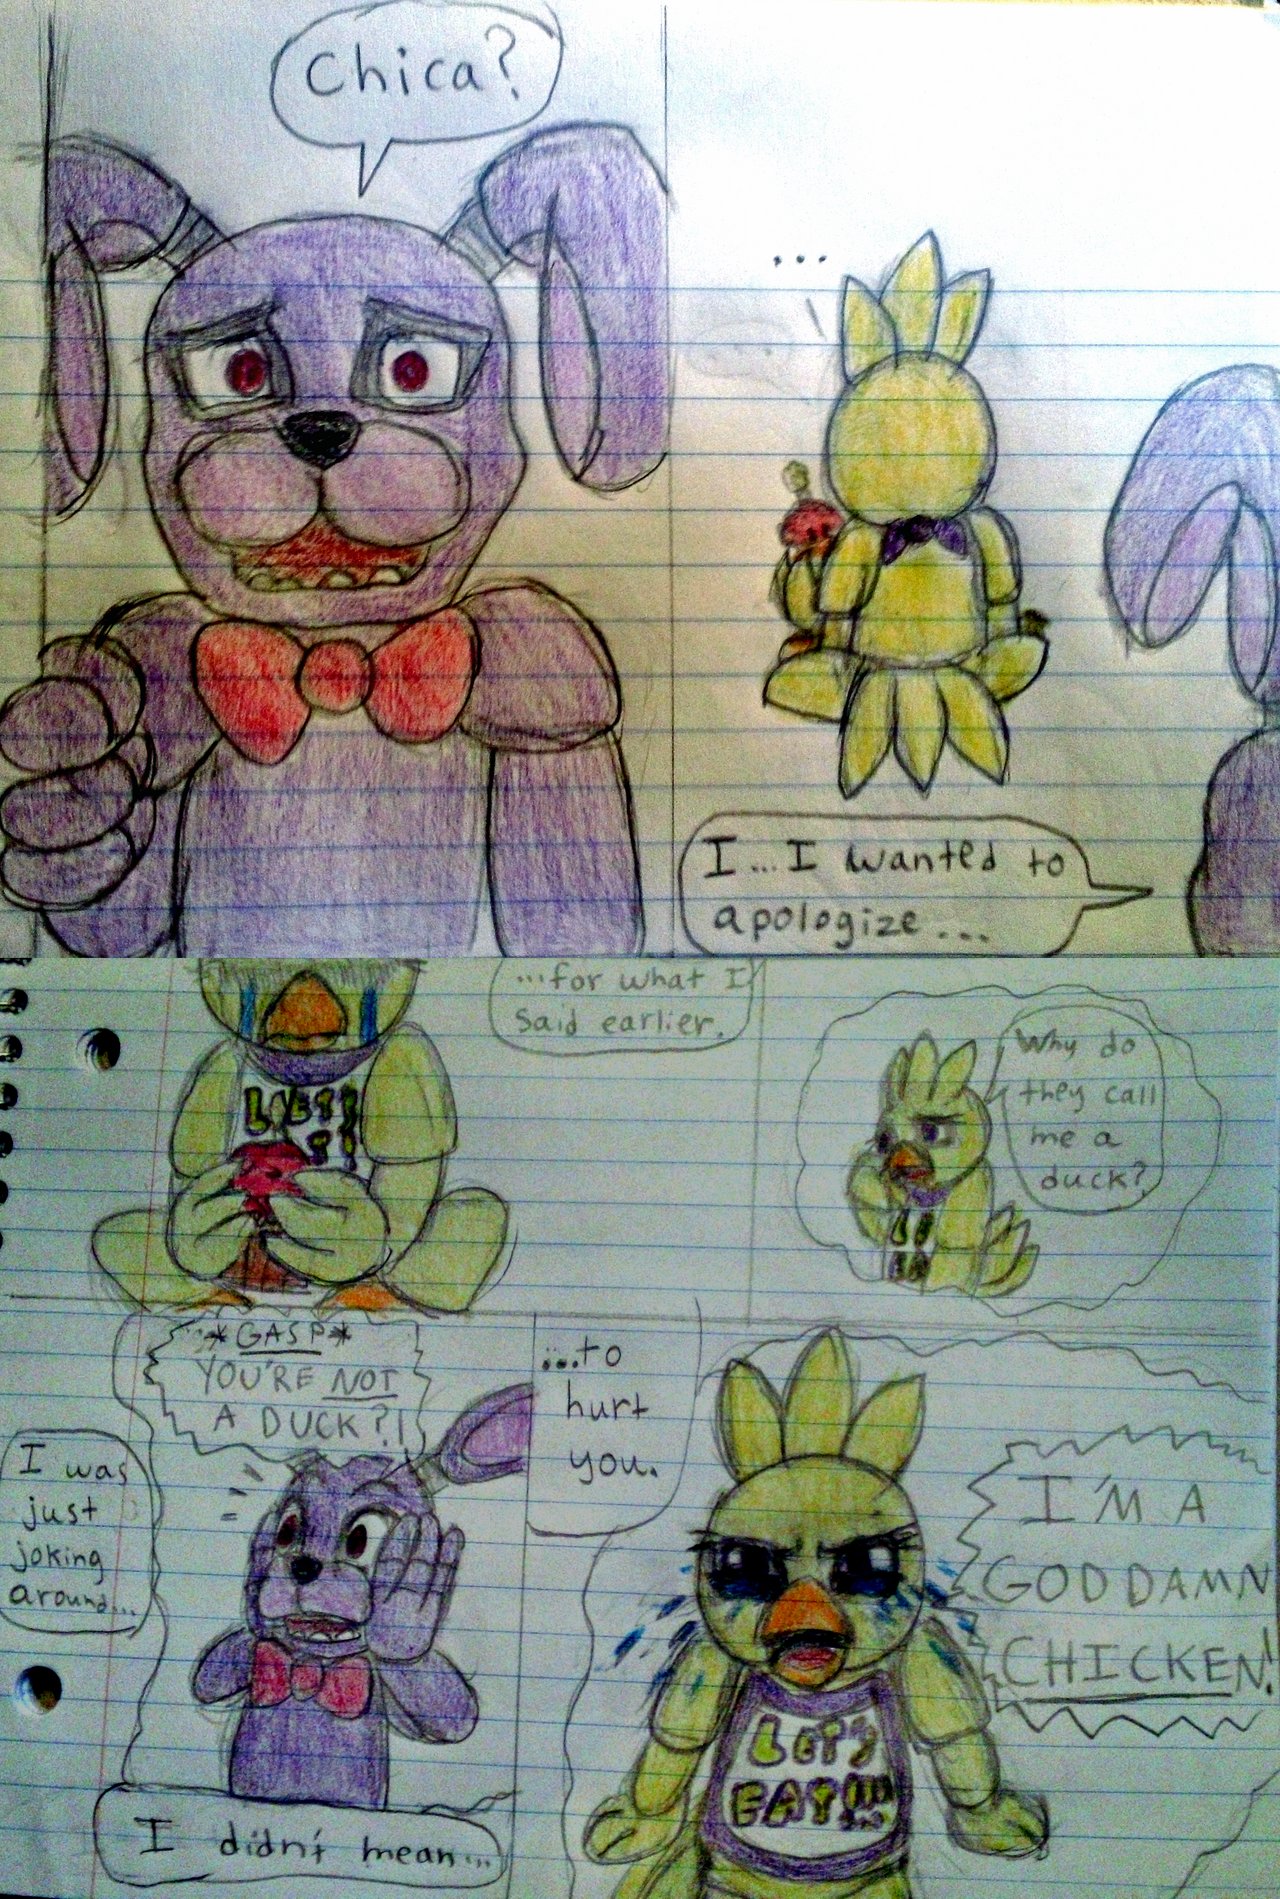 Toy chica fanfiction